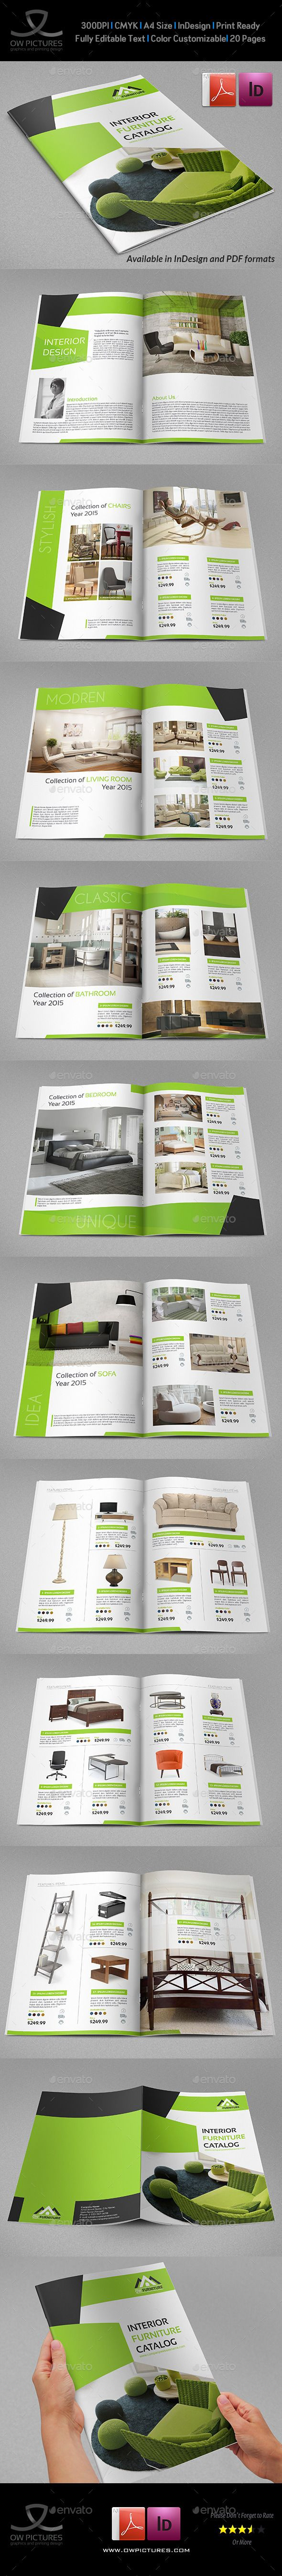 46 best catalog brochure images on pinterest | brochures, product